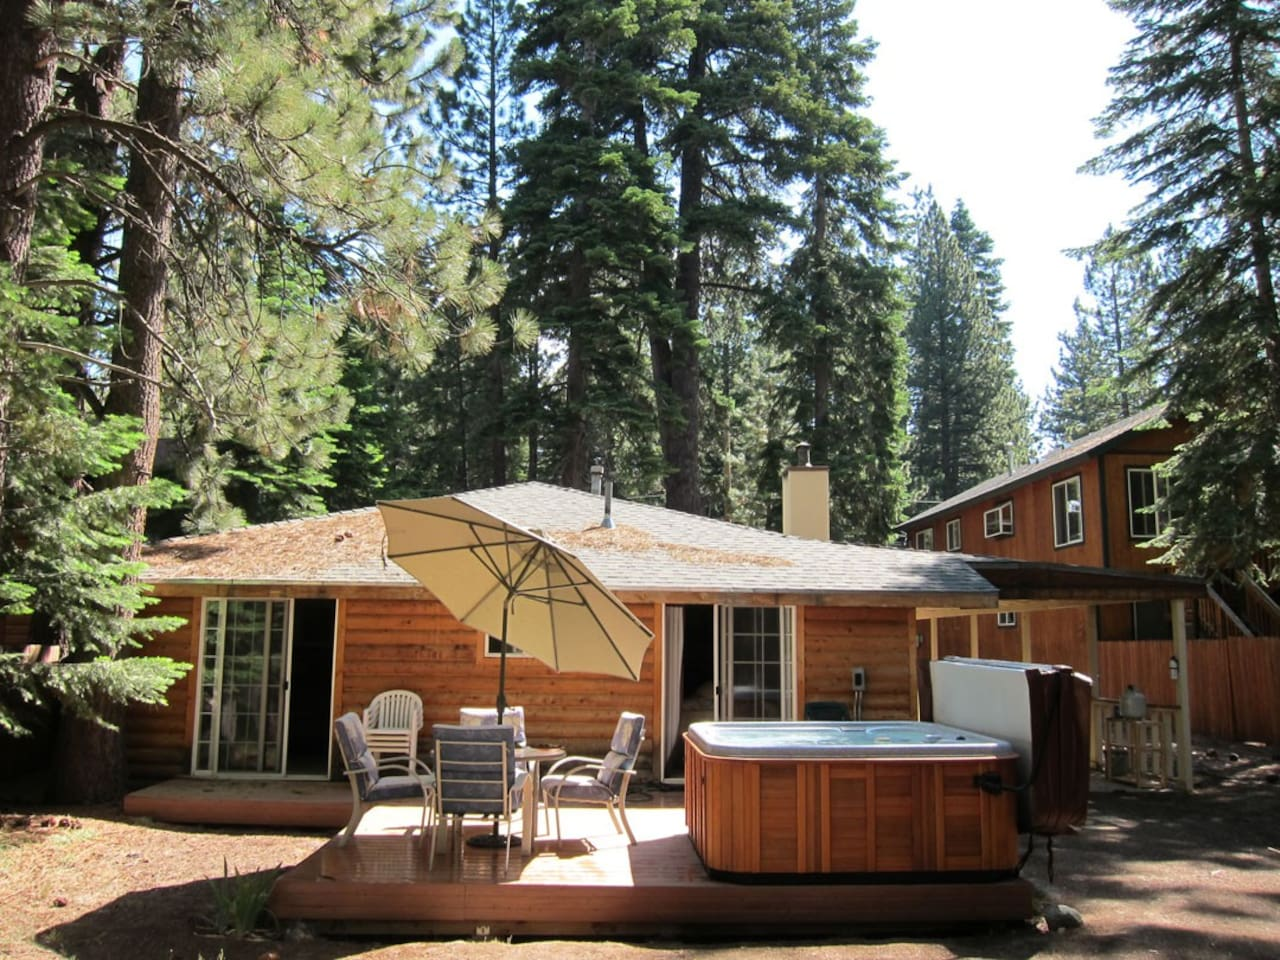 backyard with hot tub, deck, horseshoes